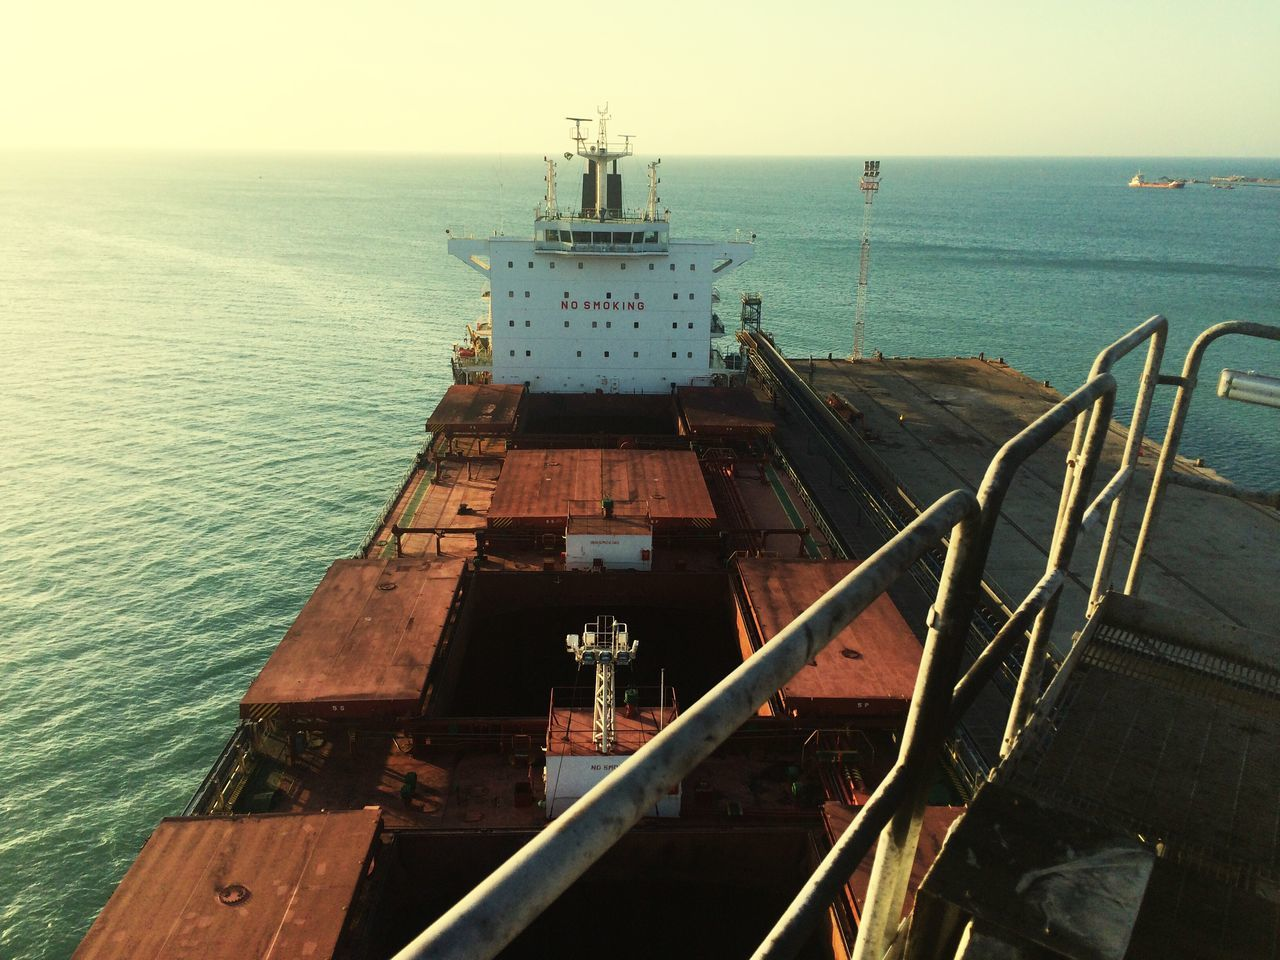 Ship Panamax Vessel Nautical Vessel Ocean Horizon Blue Bulk Carrier Hatch Coal Freight Transport